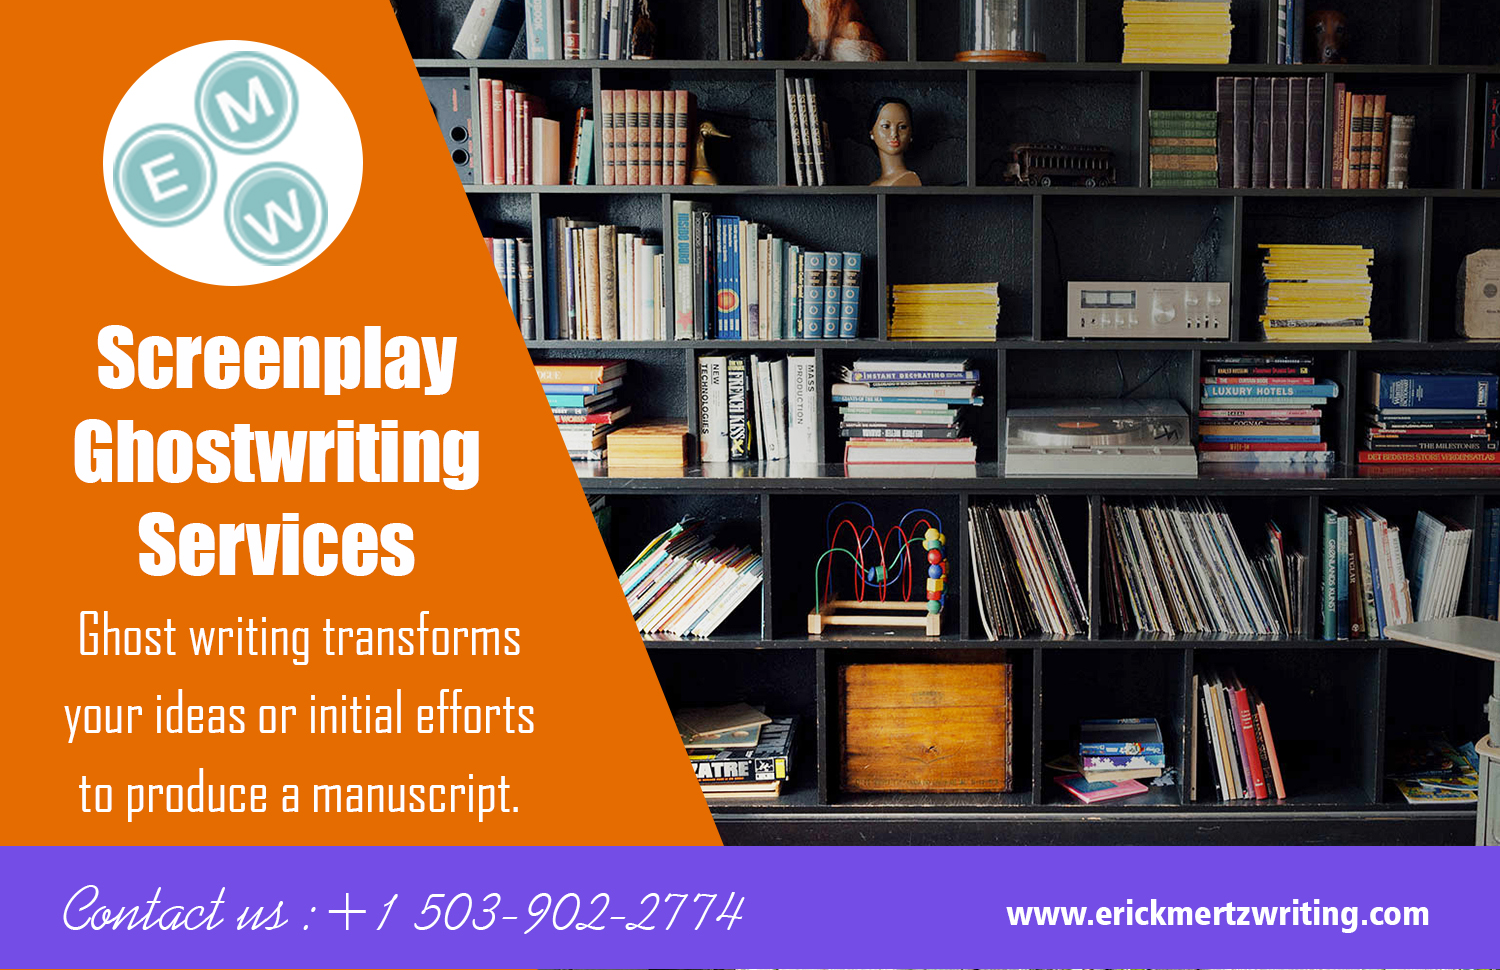 Screenplay Ghostwriting Services